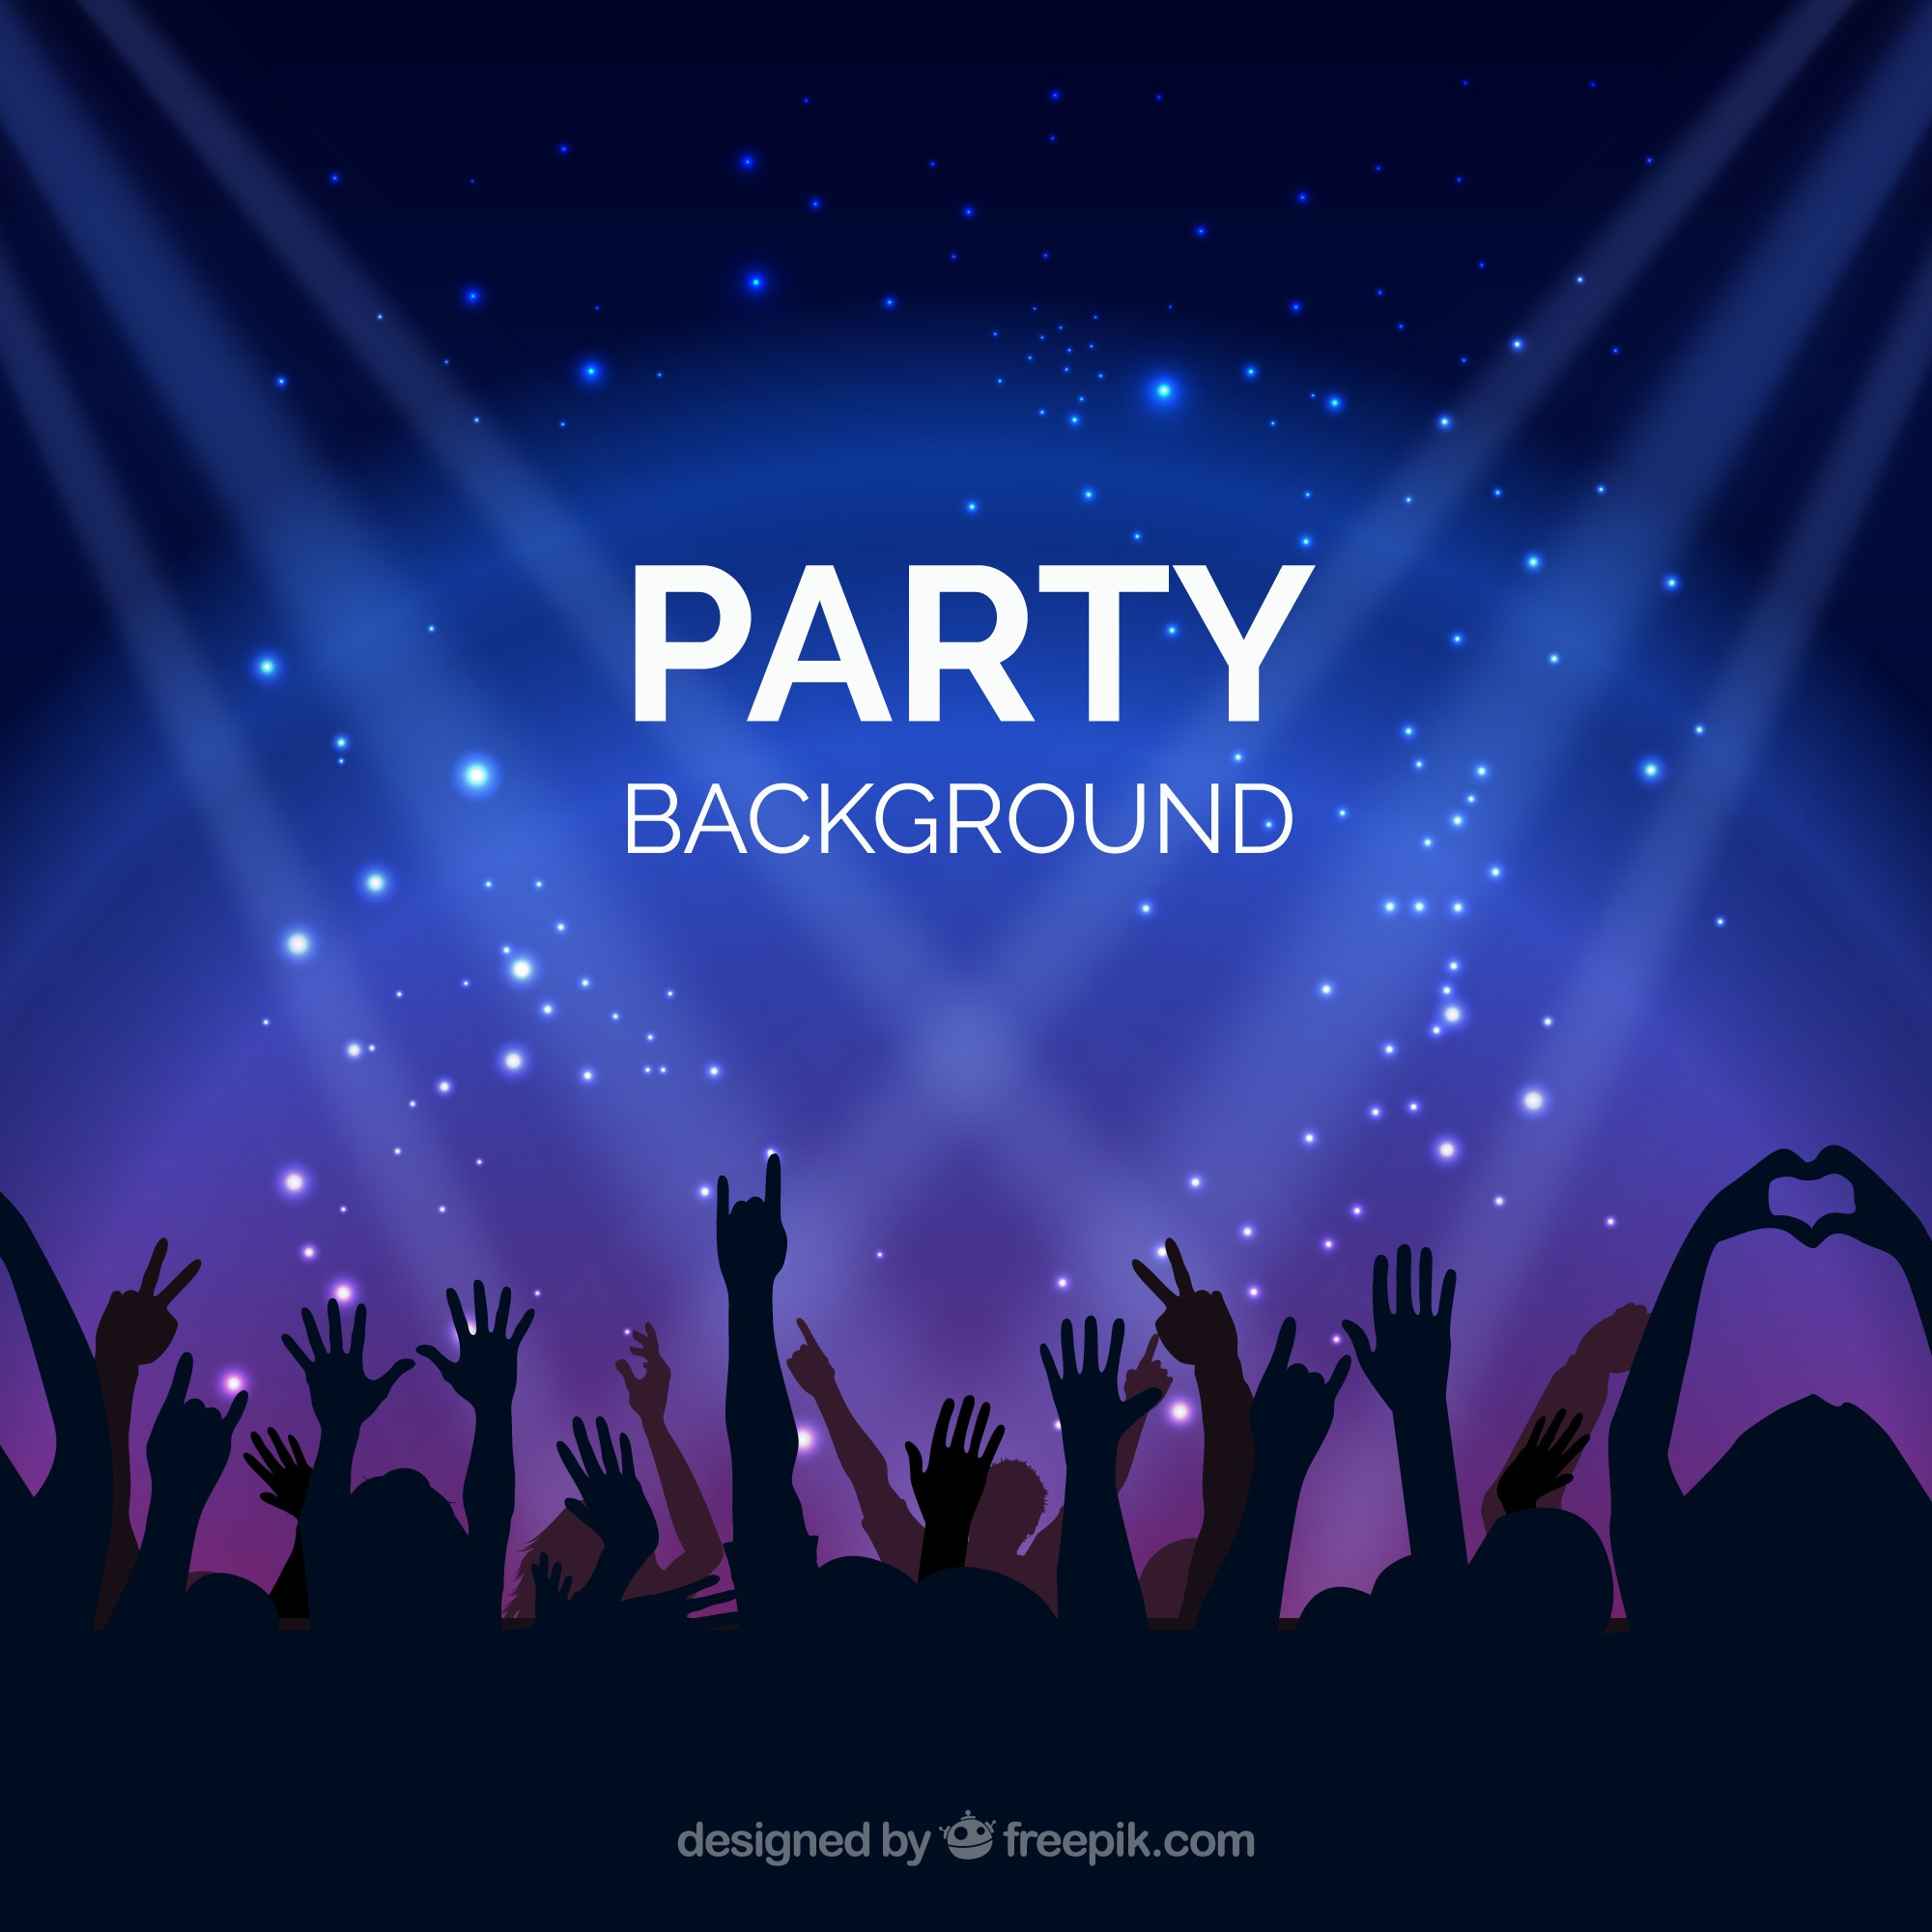 Bright background with party people